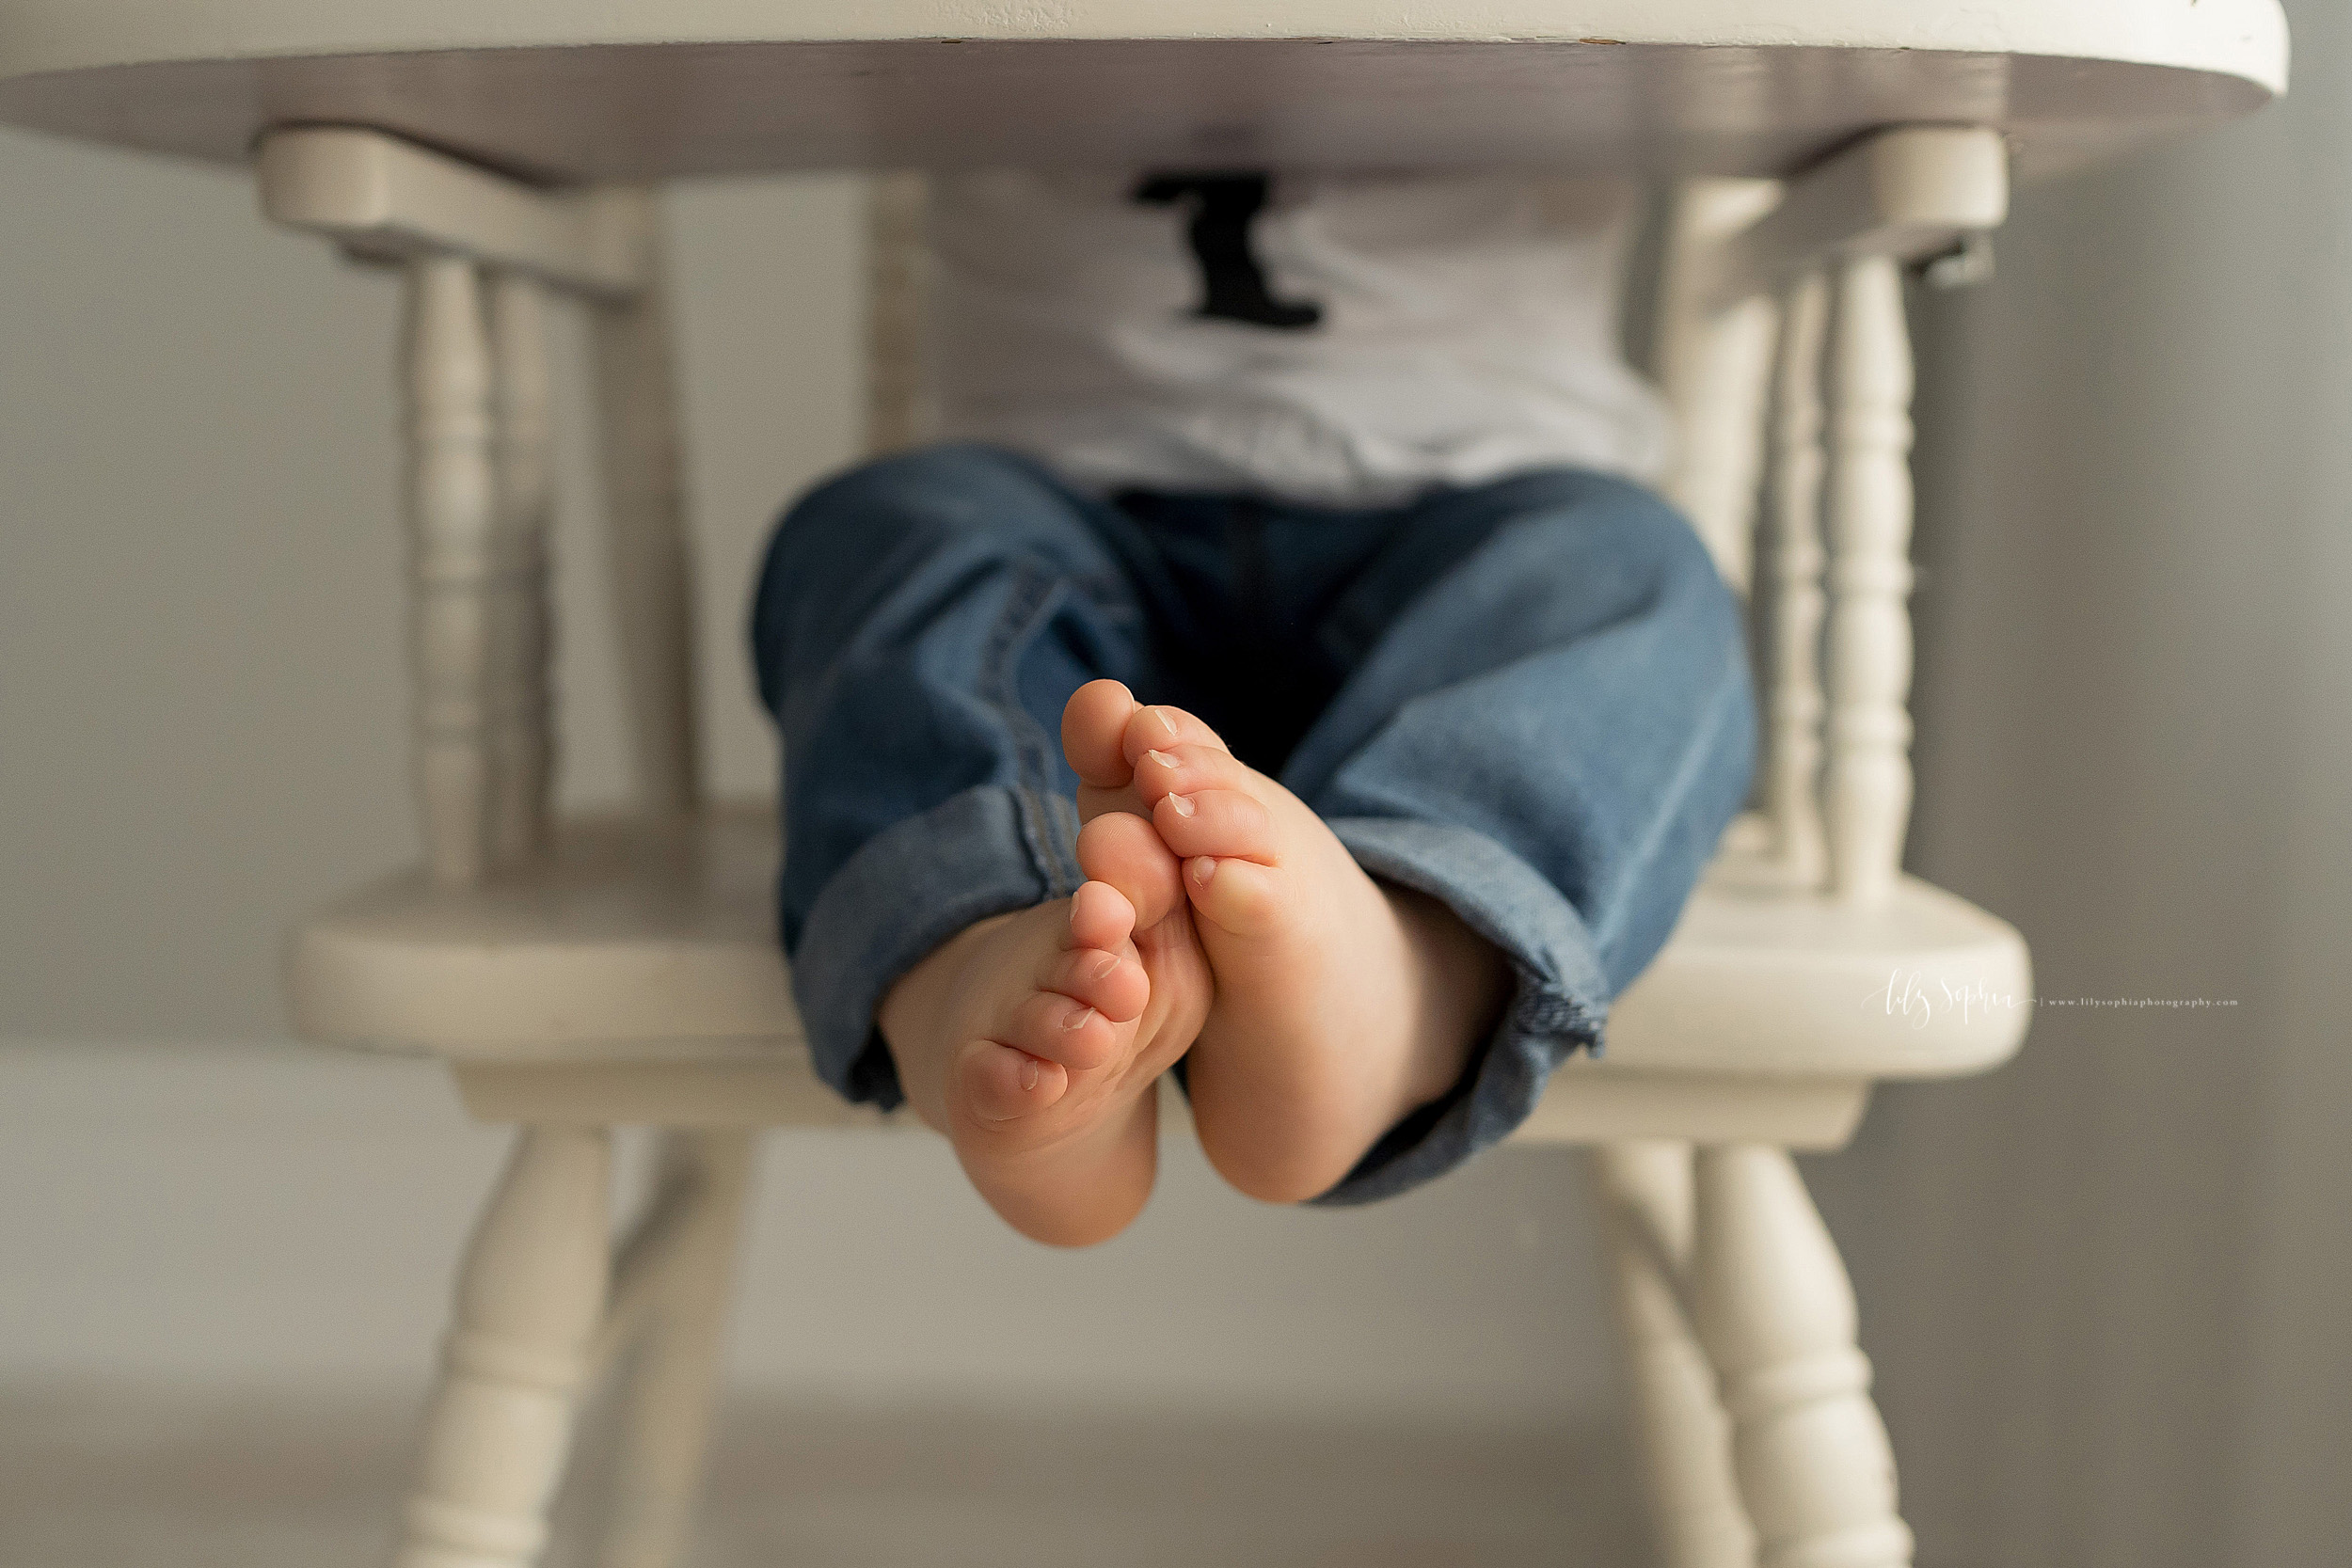 Milestone image of a one-year old as he sits in an antique high chair.  The photo shows his sweet legs and feet.